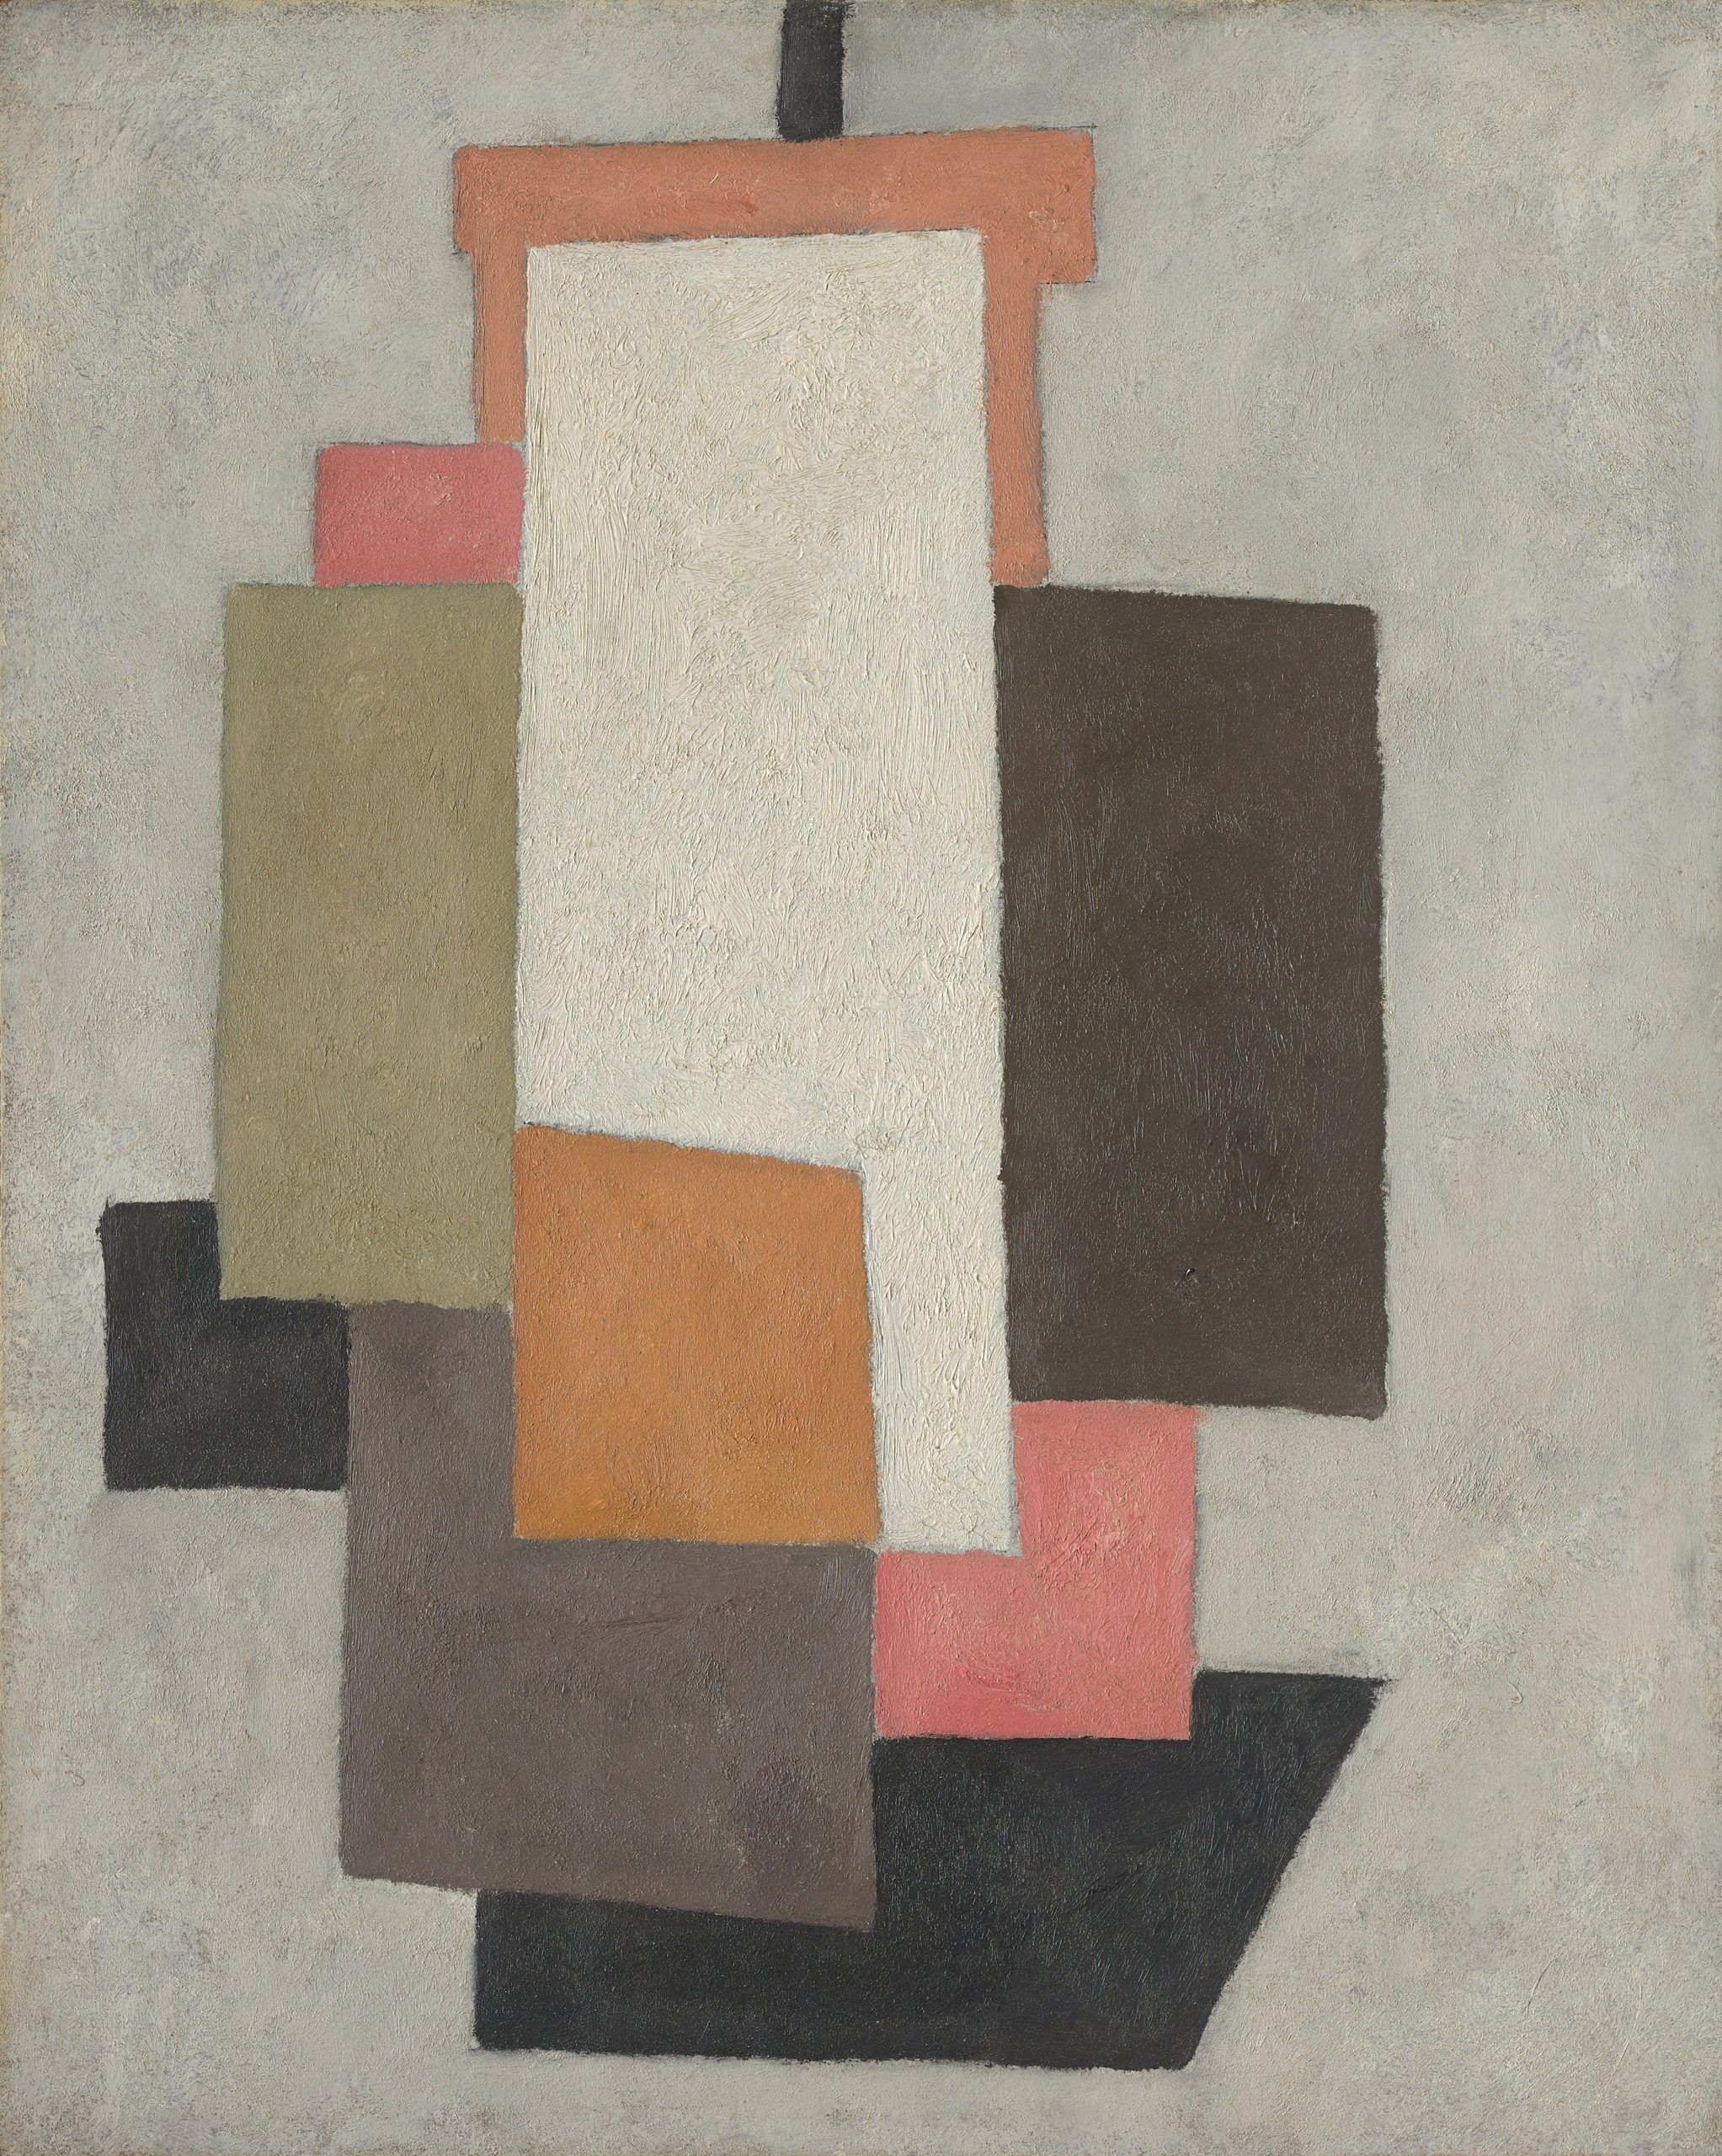 A conglomeration of overlapping rectangles of various sizes and muted tones made to resemble a ship.